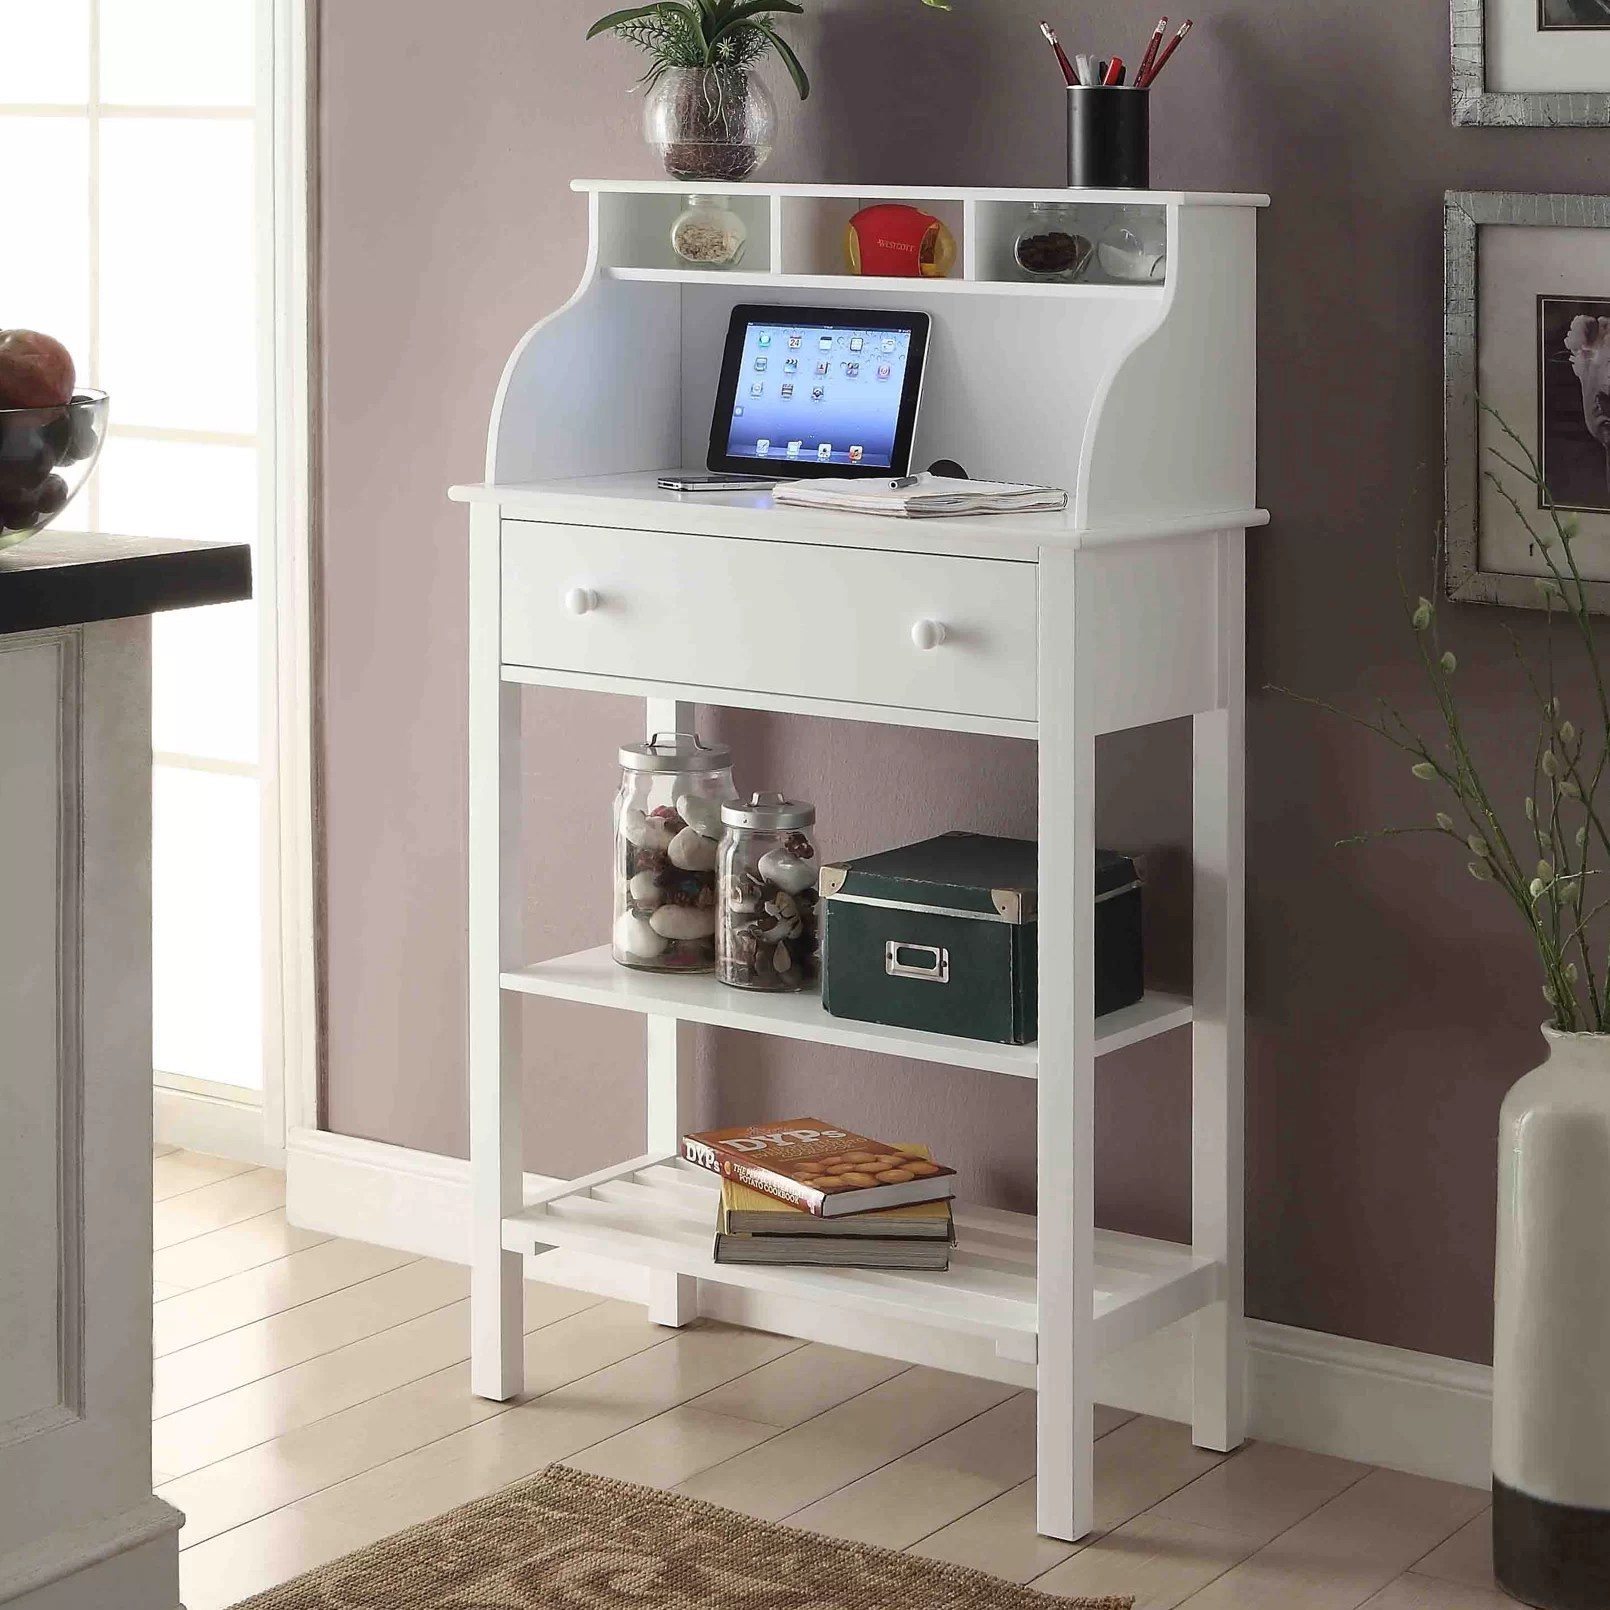 Campbelltown Furniture Andover Mills Campbelltown Secretary Desk And Reviews Wayfair